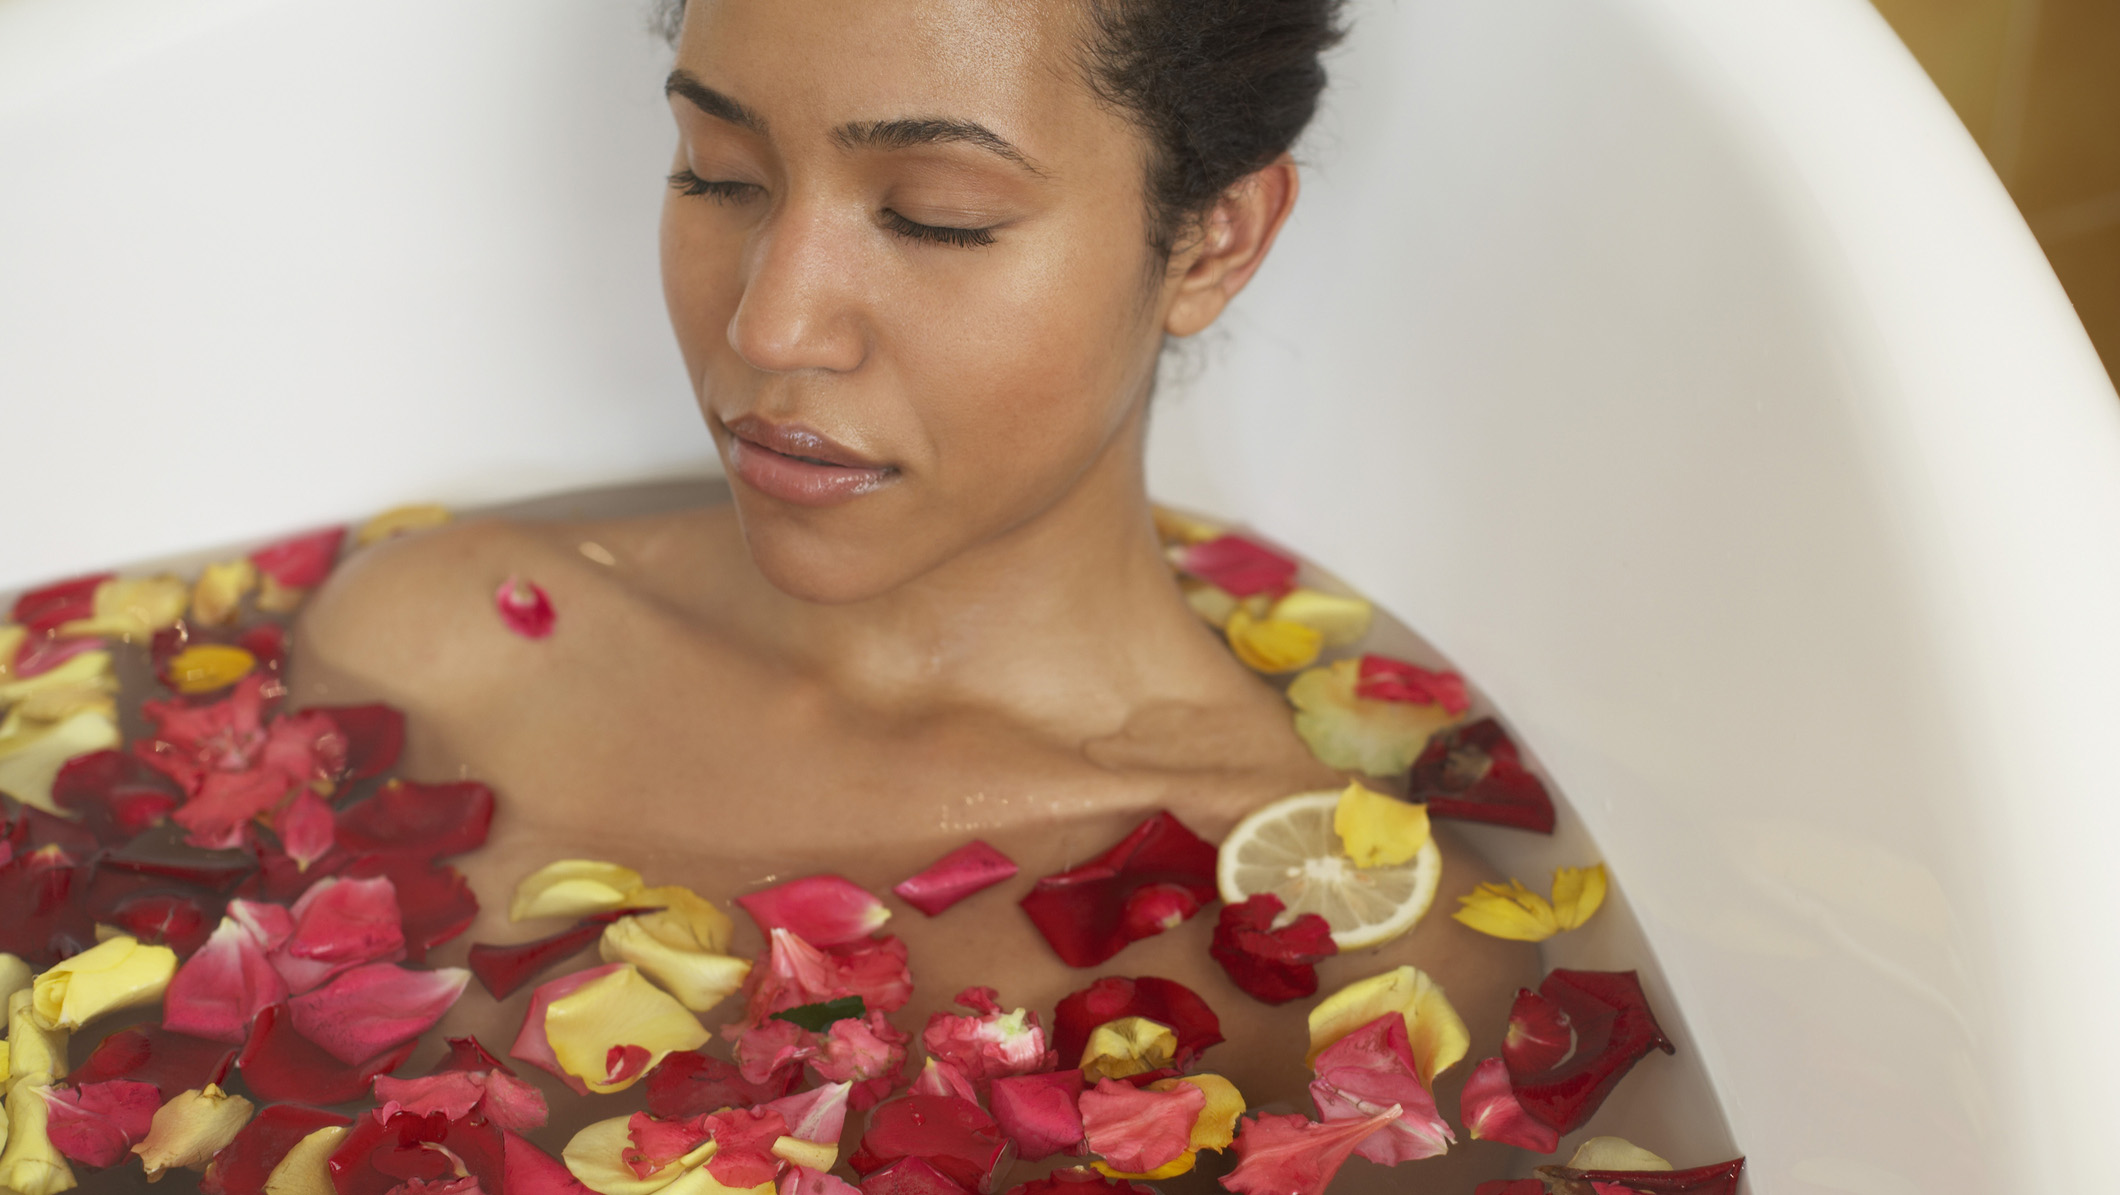 Woman relaxes in bath of flower petals